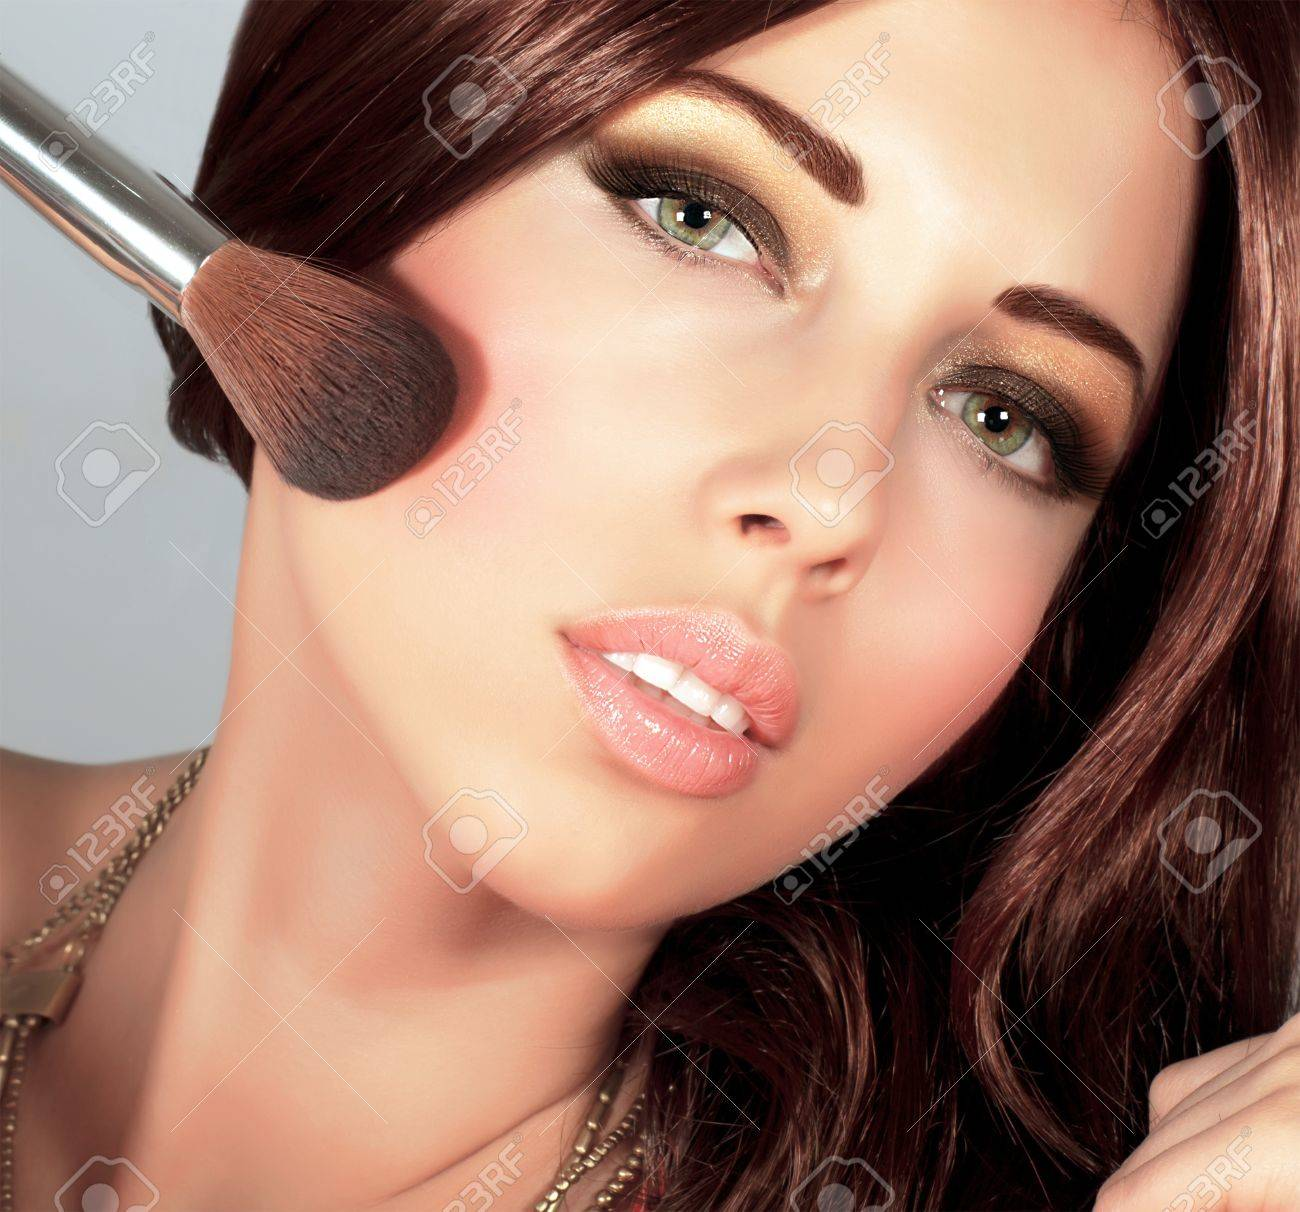 Photo of beautiful stylish woman doing makeup, closeup portrait of pretty female with silky brown hair holding brush for blush isolated on grey background, smoky eyes, fashionable makeover Stock Photo - 16367631